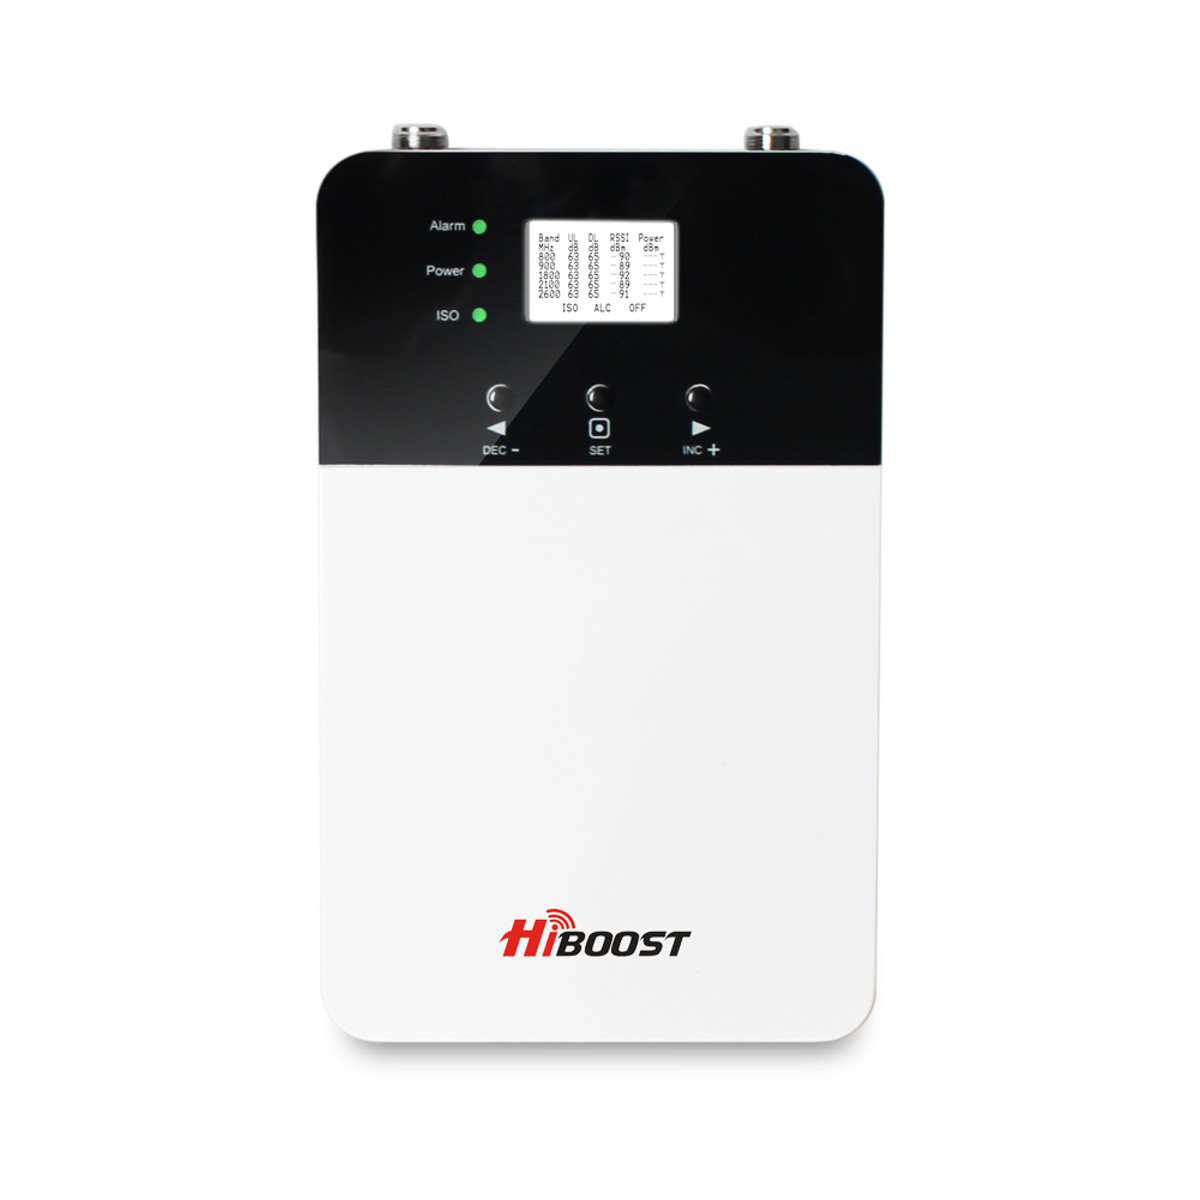 HiBoost Home 4K Plus Signal Booster Kit - Up To 4,000 Sq Ft. Coverage